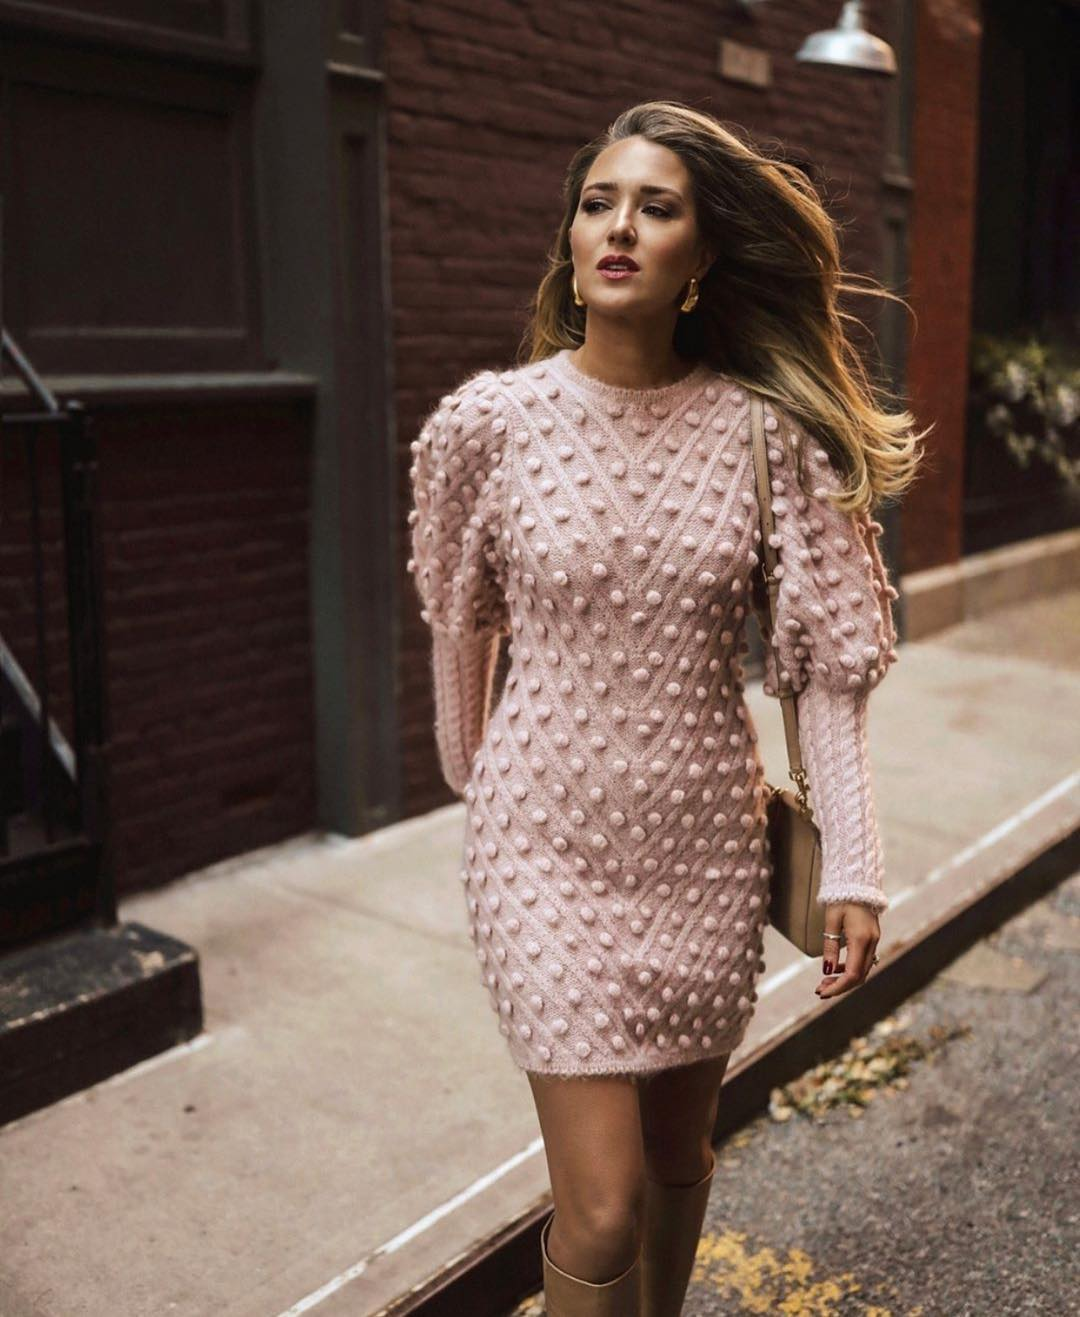 Blush Sweaterdress With Puff Sleeves For Spring In London 2020